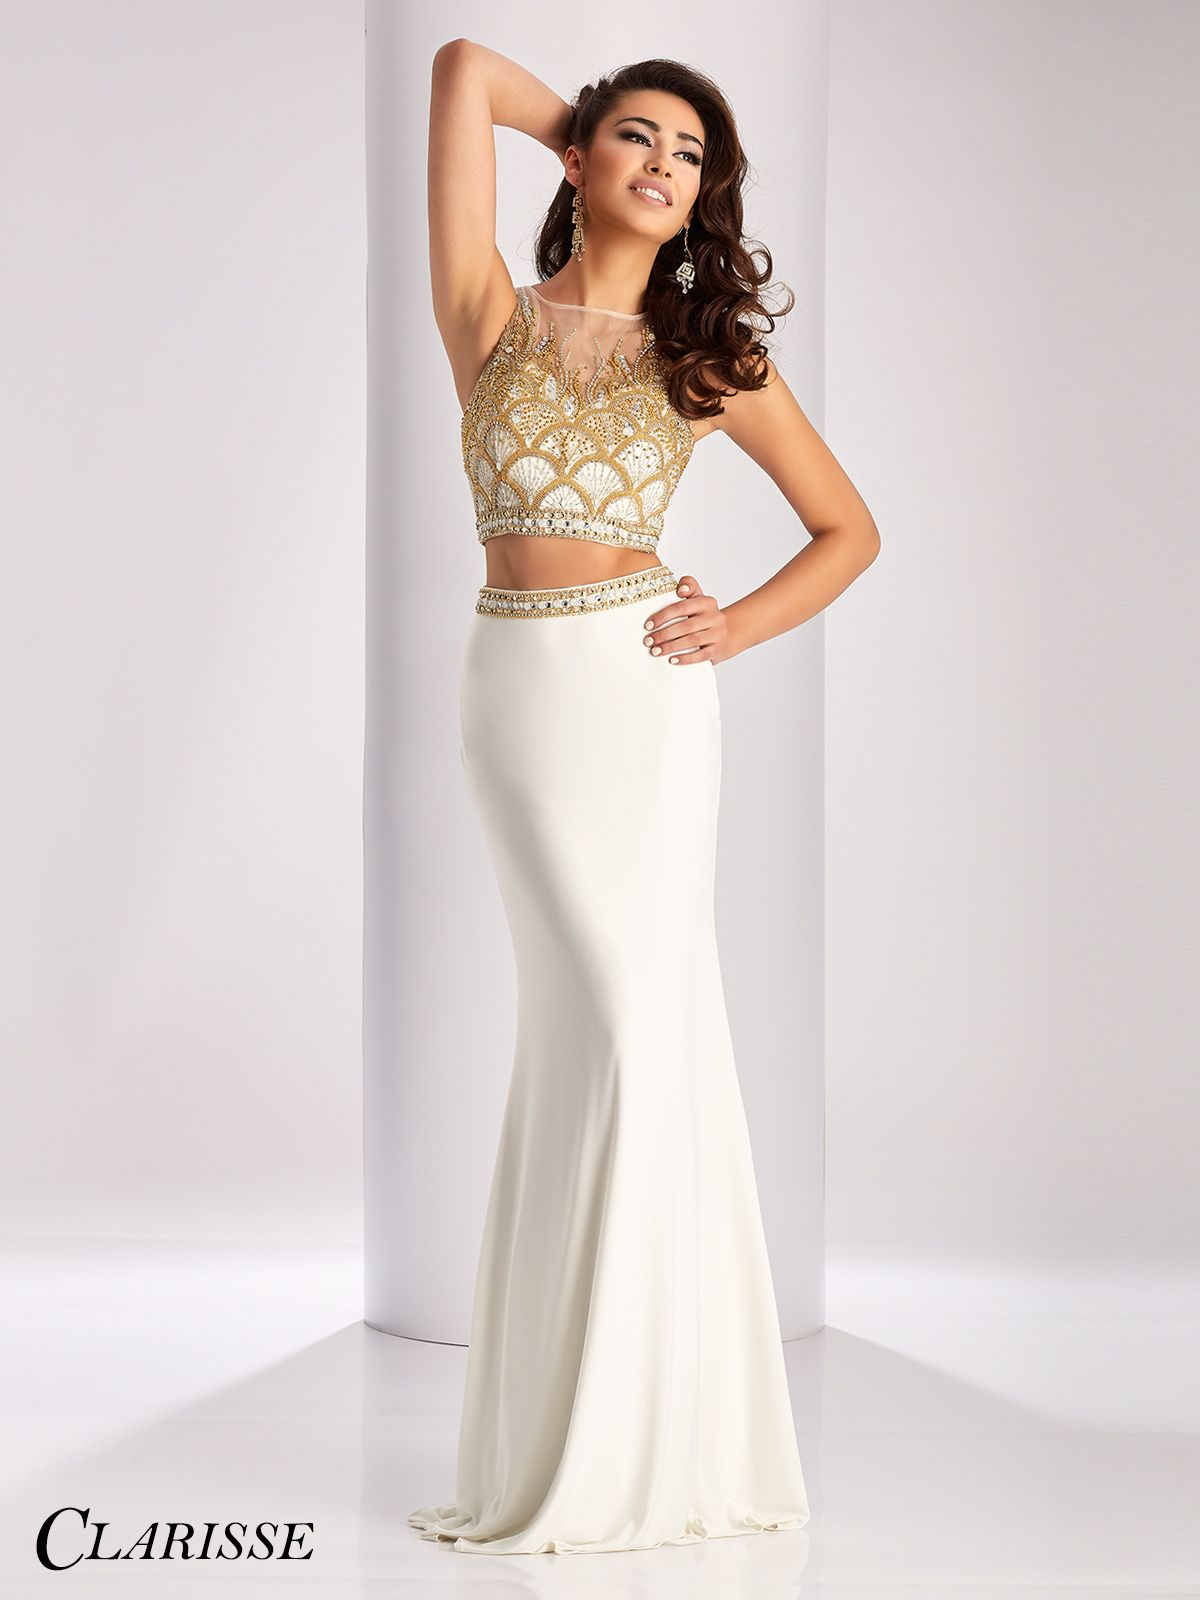 Wedding Gold And White Prom Dresses clarisse gold embellished two piece dress 3009 colors shops and 3009